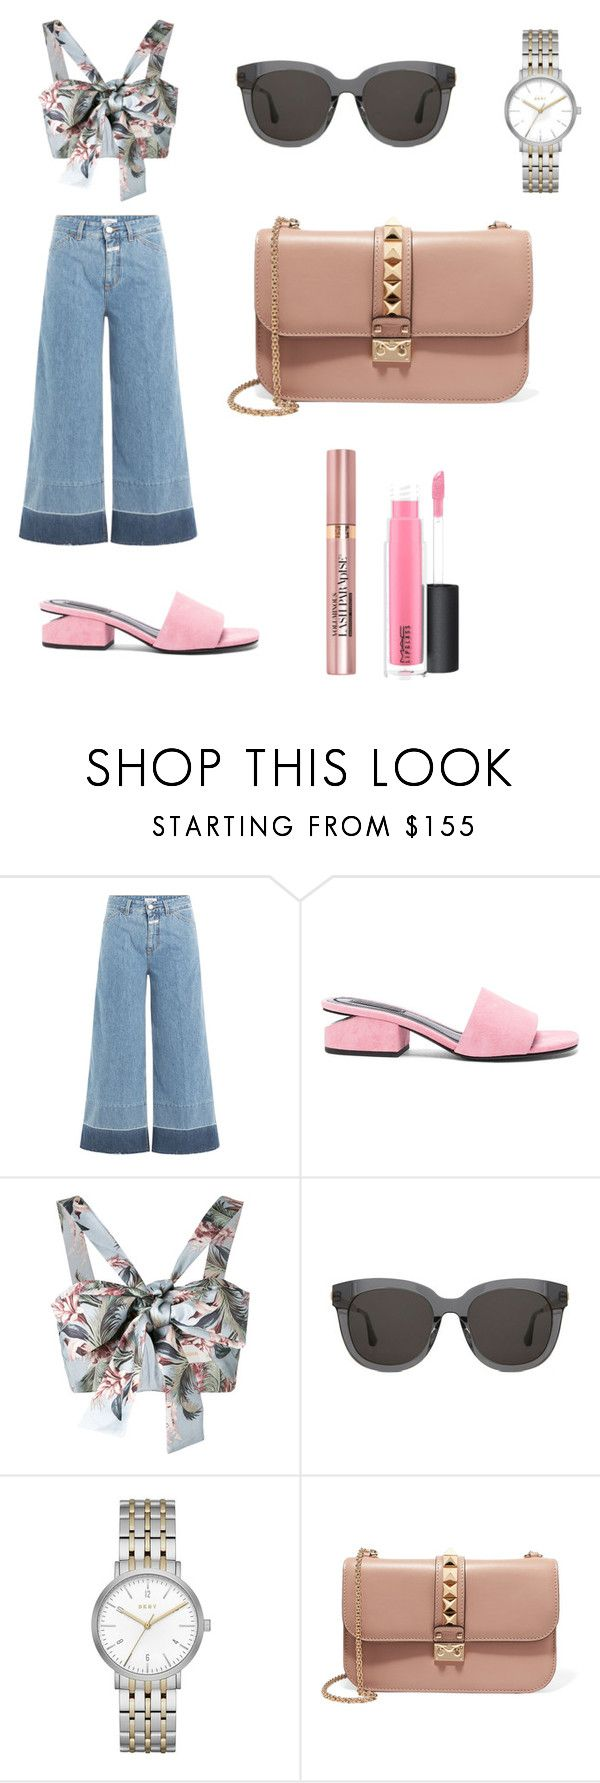 """Subtle Beautu"" by fashionkillakaren ❤ liked on Polyvore featuring Closed, Alexander Wang, Zimmermann, Gentle Monster, DKNY, Valentino, L'Oréal Paris and MAC Cosmetics"